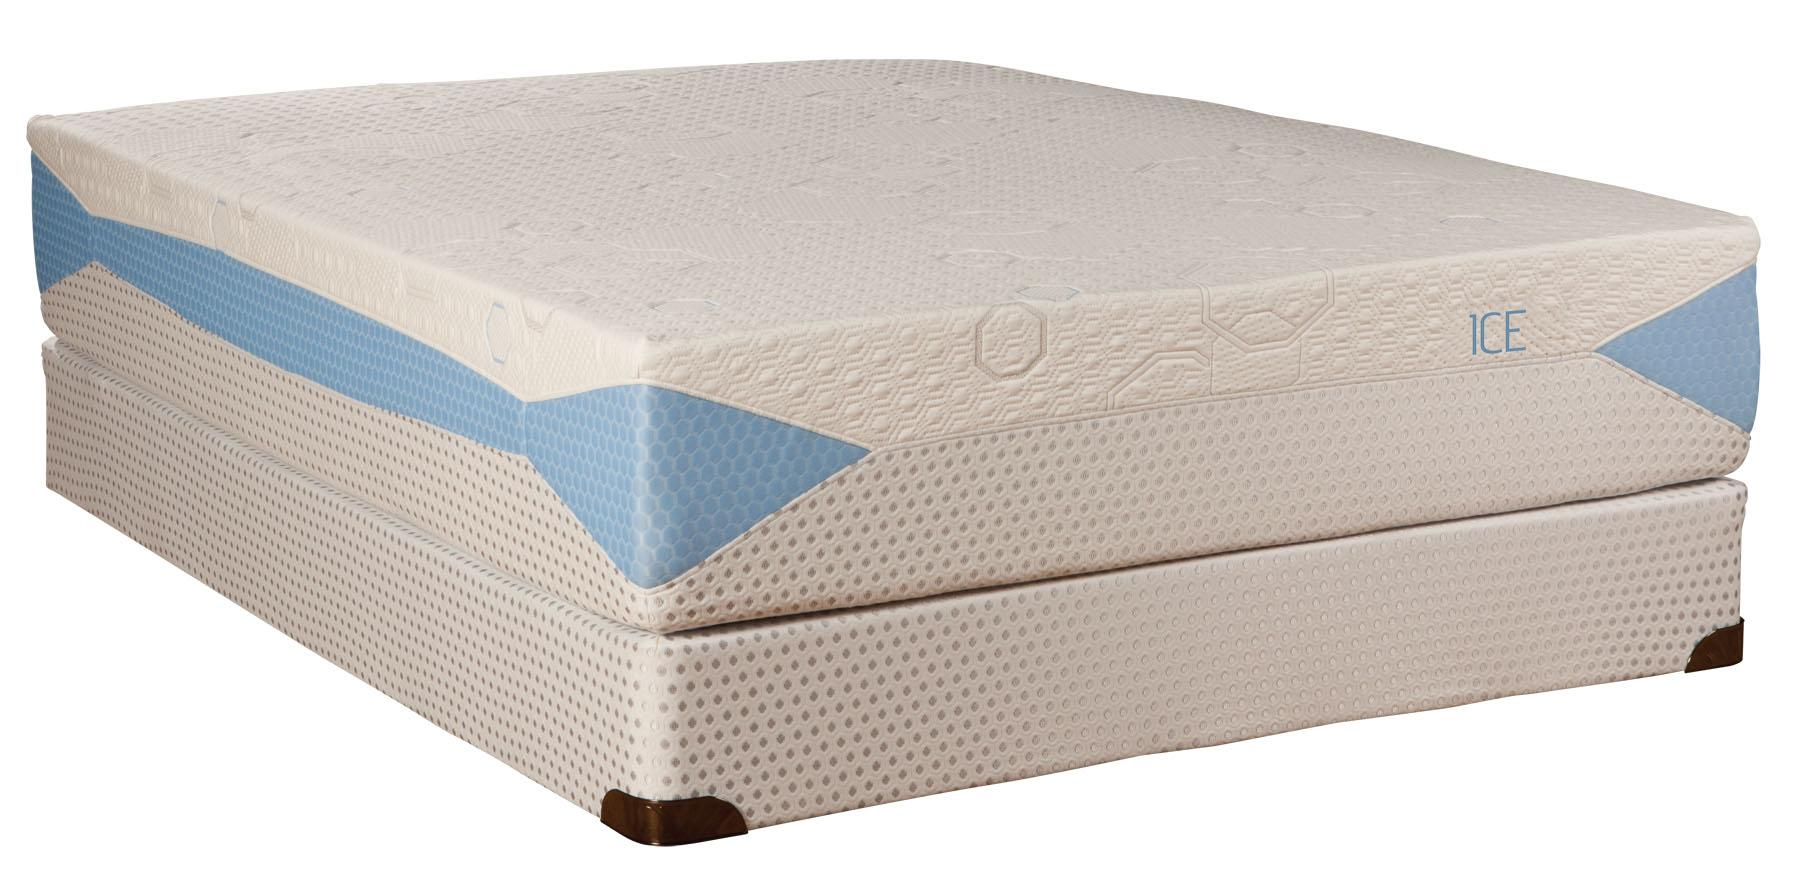 Kingsdown Blu-Tek Ice Queen Memory Foam Mattress  - Item Number: ICE-Q